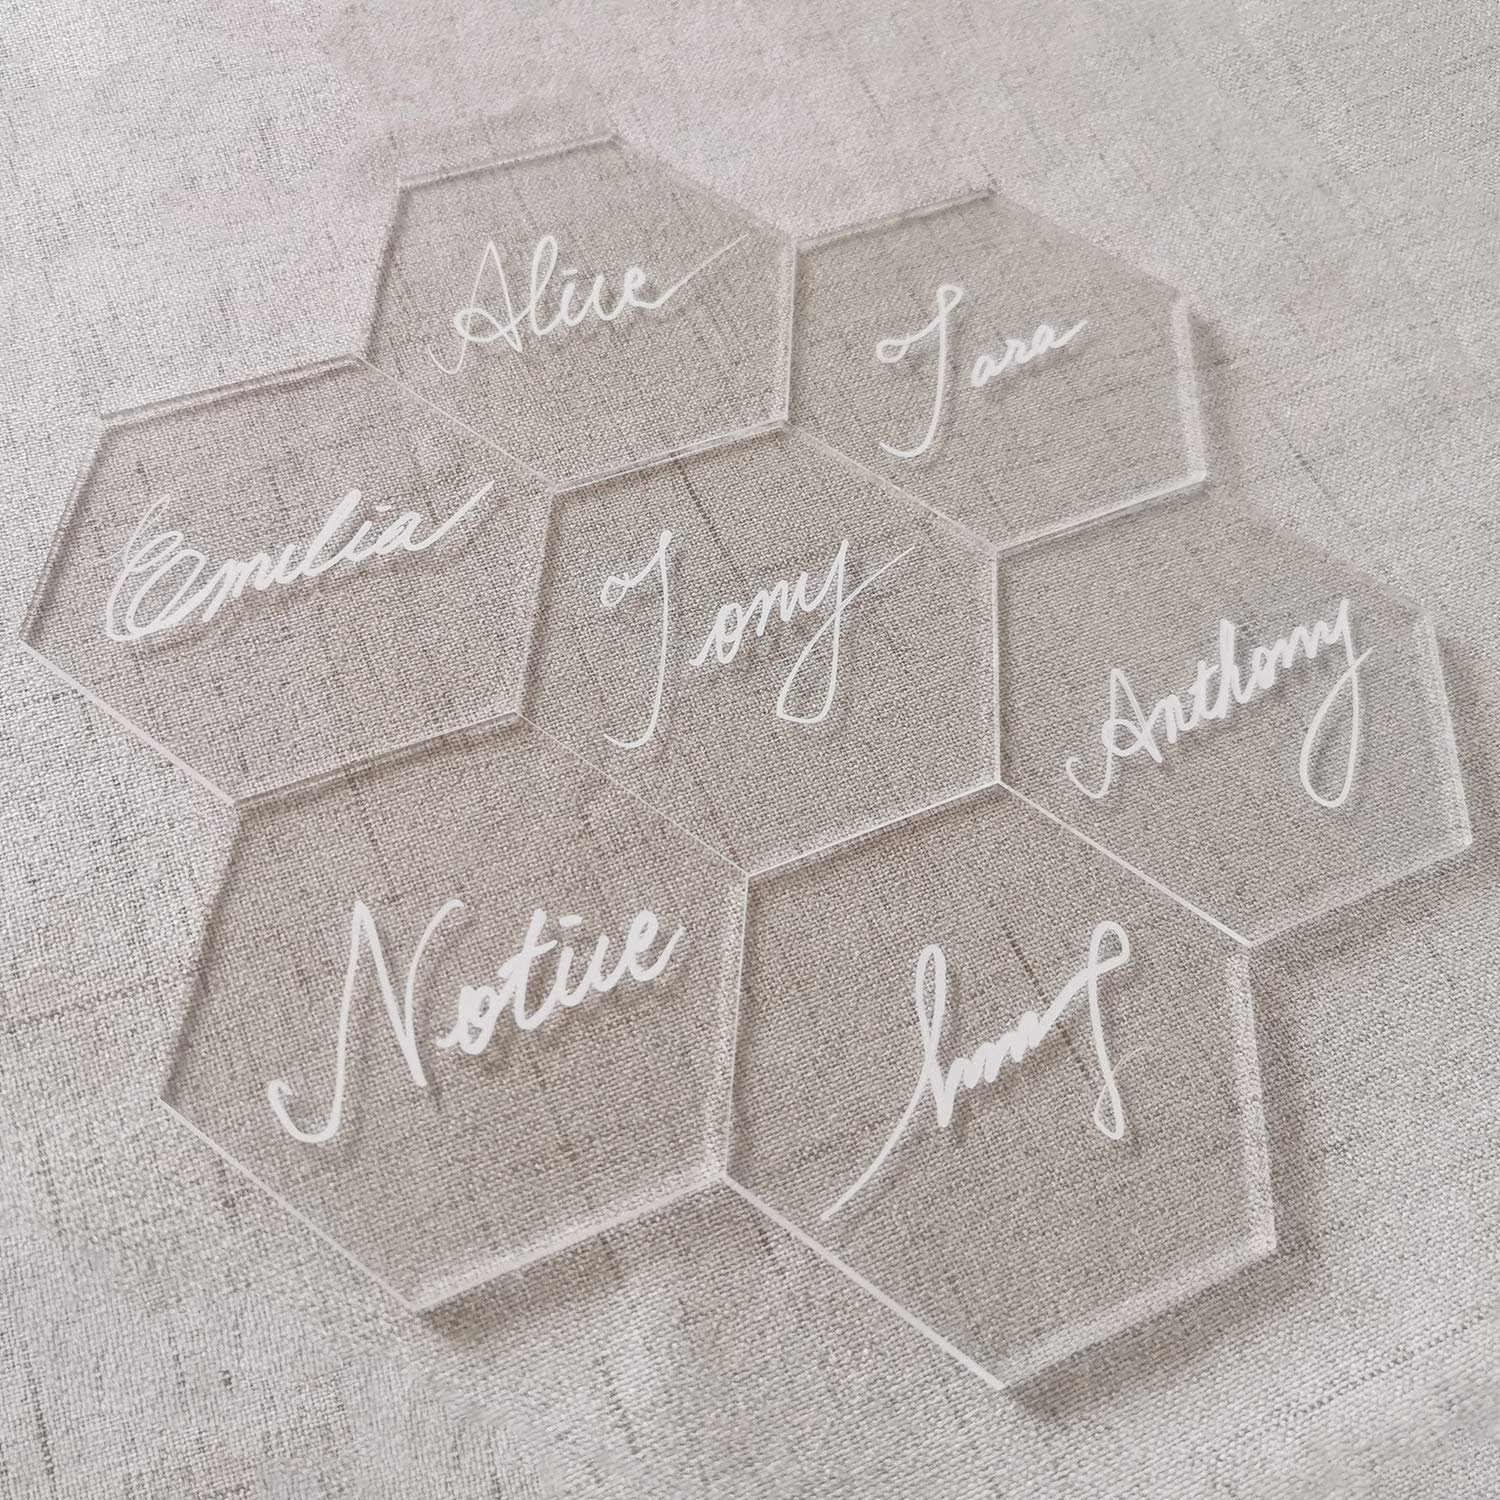 JINMURY Clear Acrylic Place Cards for Weddings or Parties- 25pcs DIY Blank Table Seating, Hexagon Shape Name Cards- Perfect for Modern Wedding, Bridal Shower, Banquet Events by JINMURY